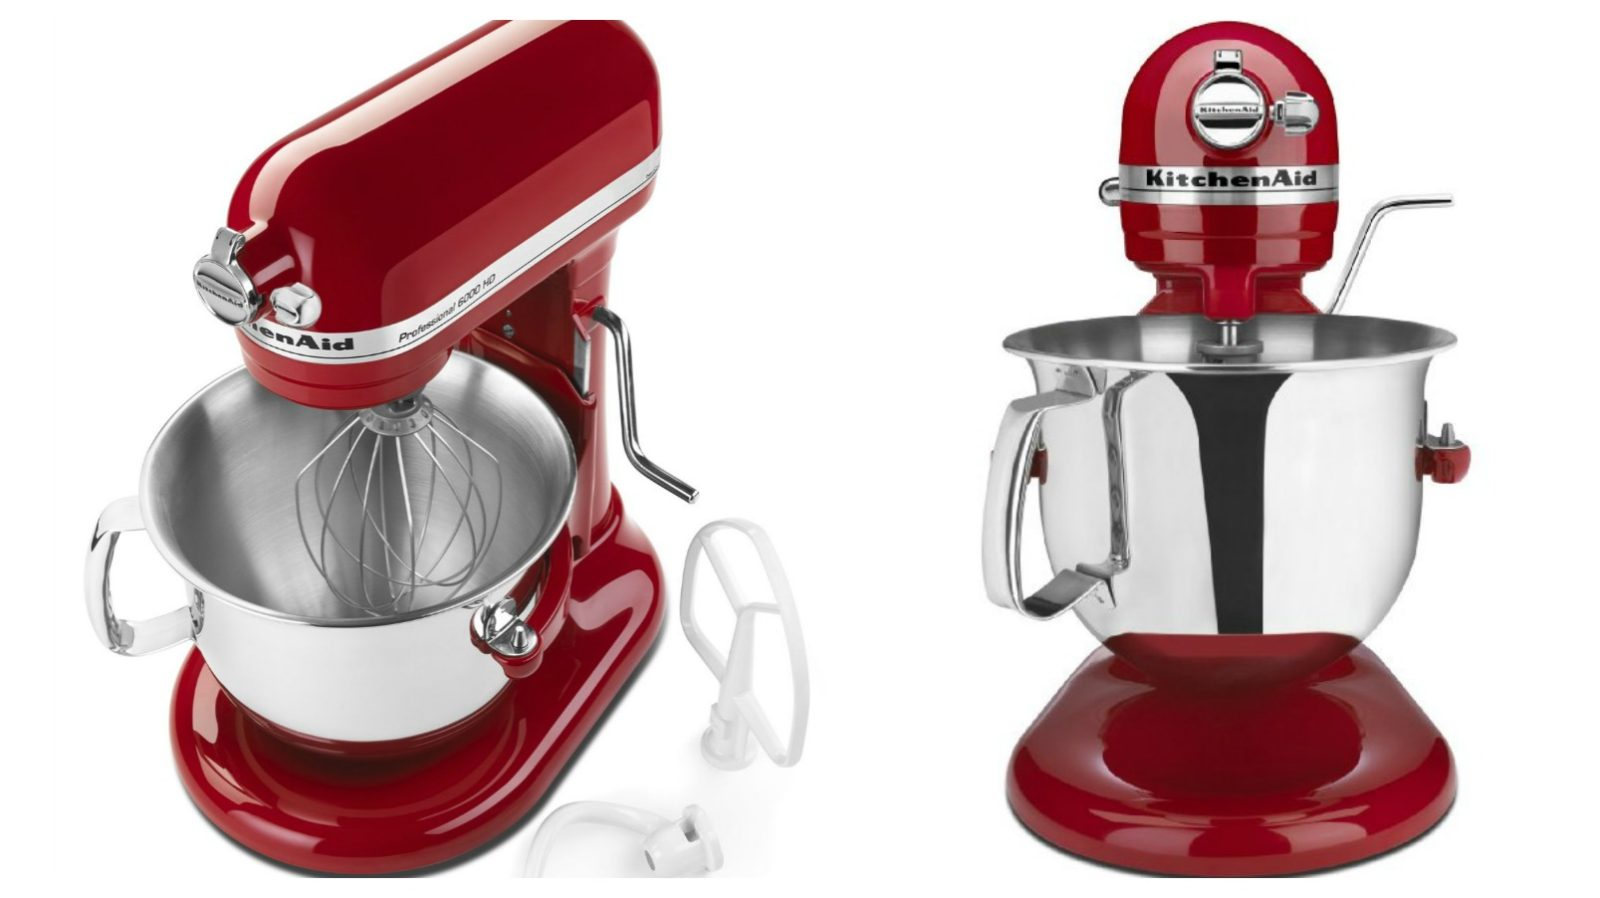 Amazon offers the Professional 6-qt KitchenAid Stand Mixer at ...